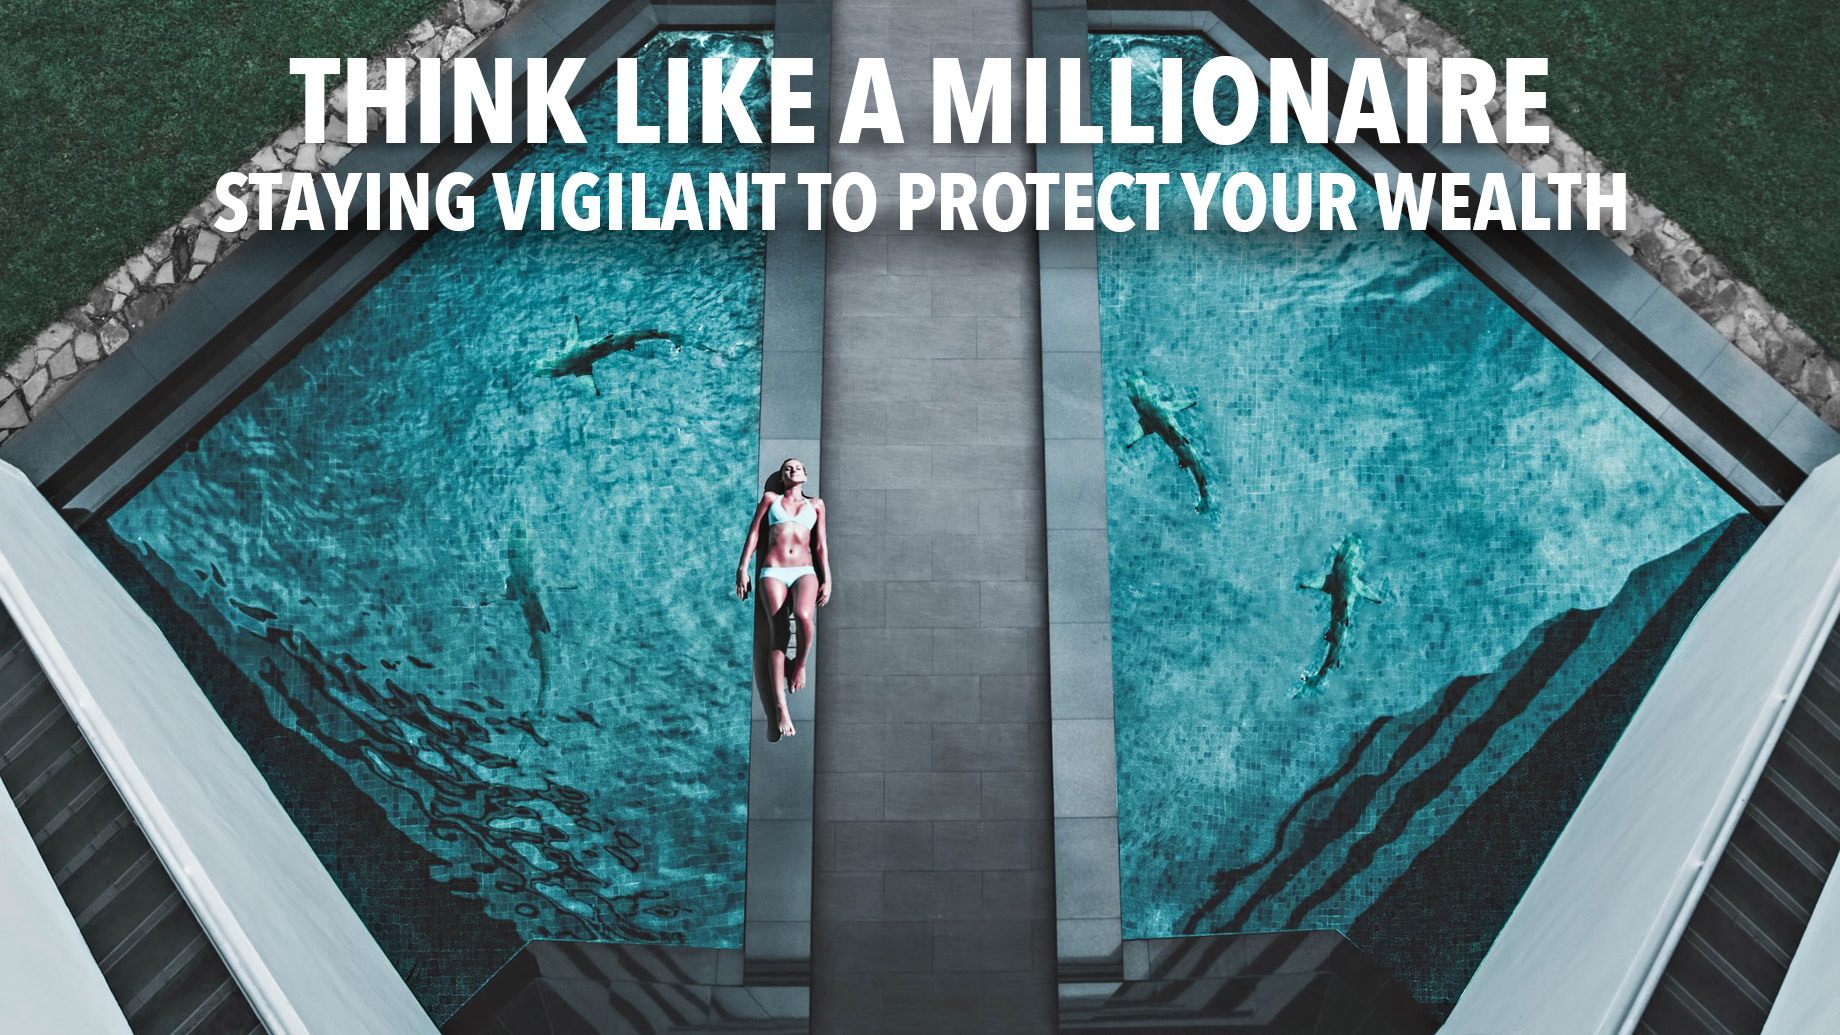 Think Like a Millionaire - Staying Vigilant to Protect Your Wealth